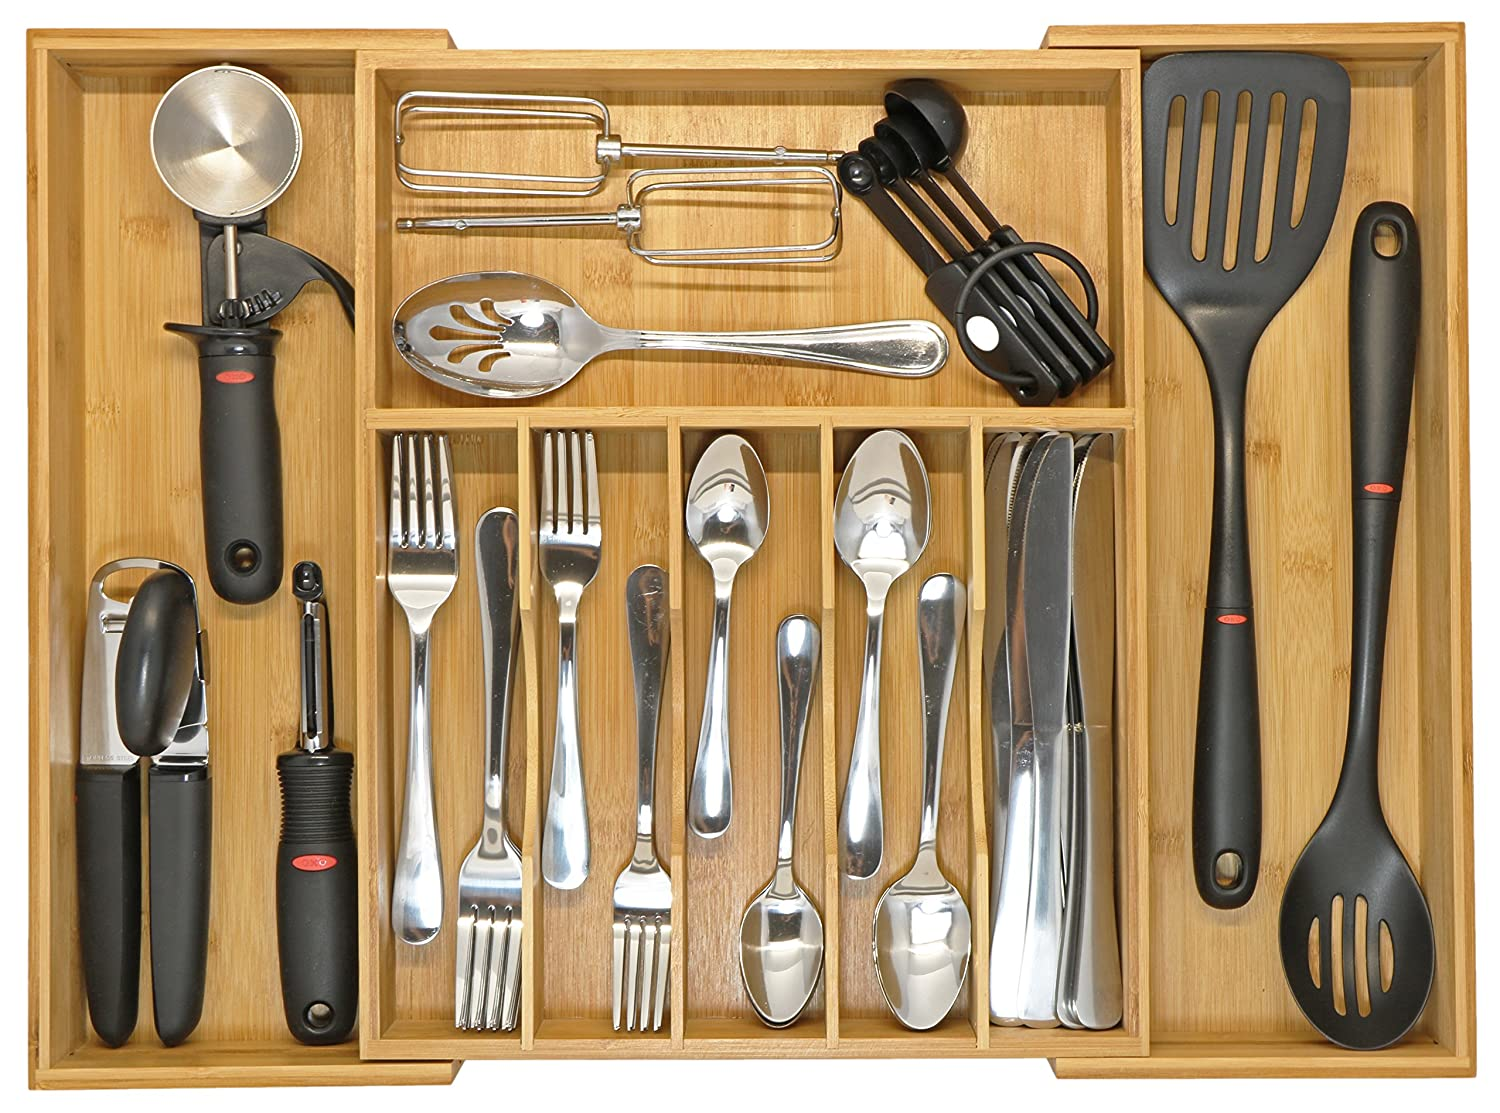 KitchenEdge Bamboo High Capacity Kitchen Drawer Organizer for Silverware, Flatware and Utensils, Expands to 21 Inches Wide, Holds 16 Placesettings KS-1004